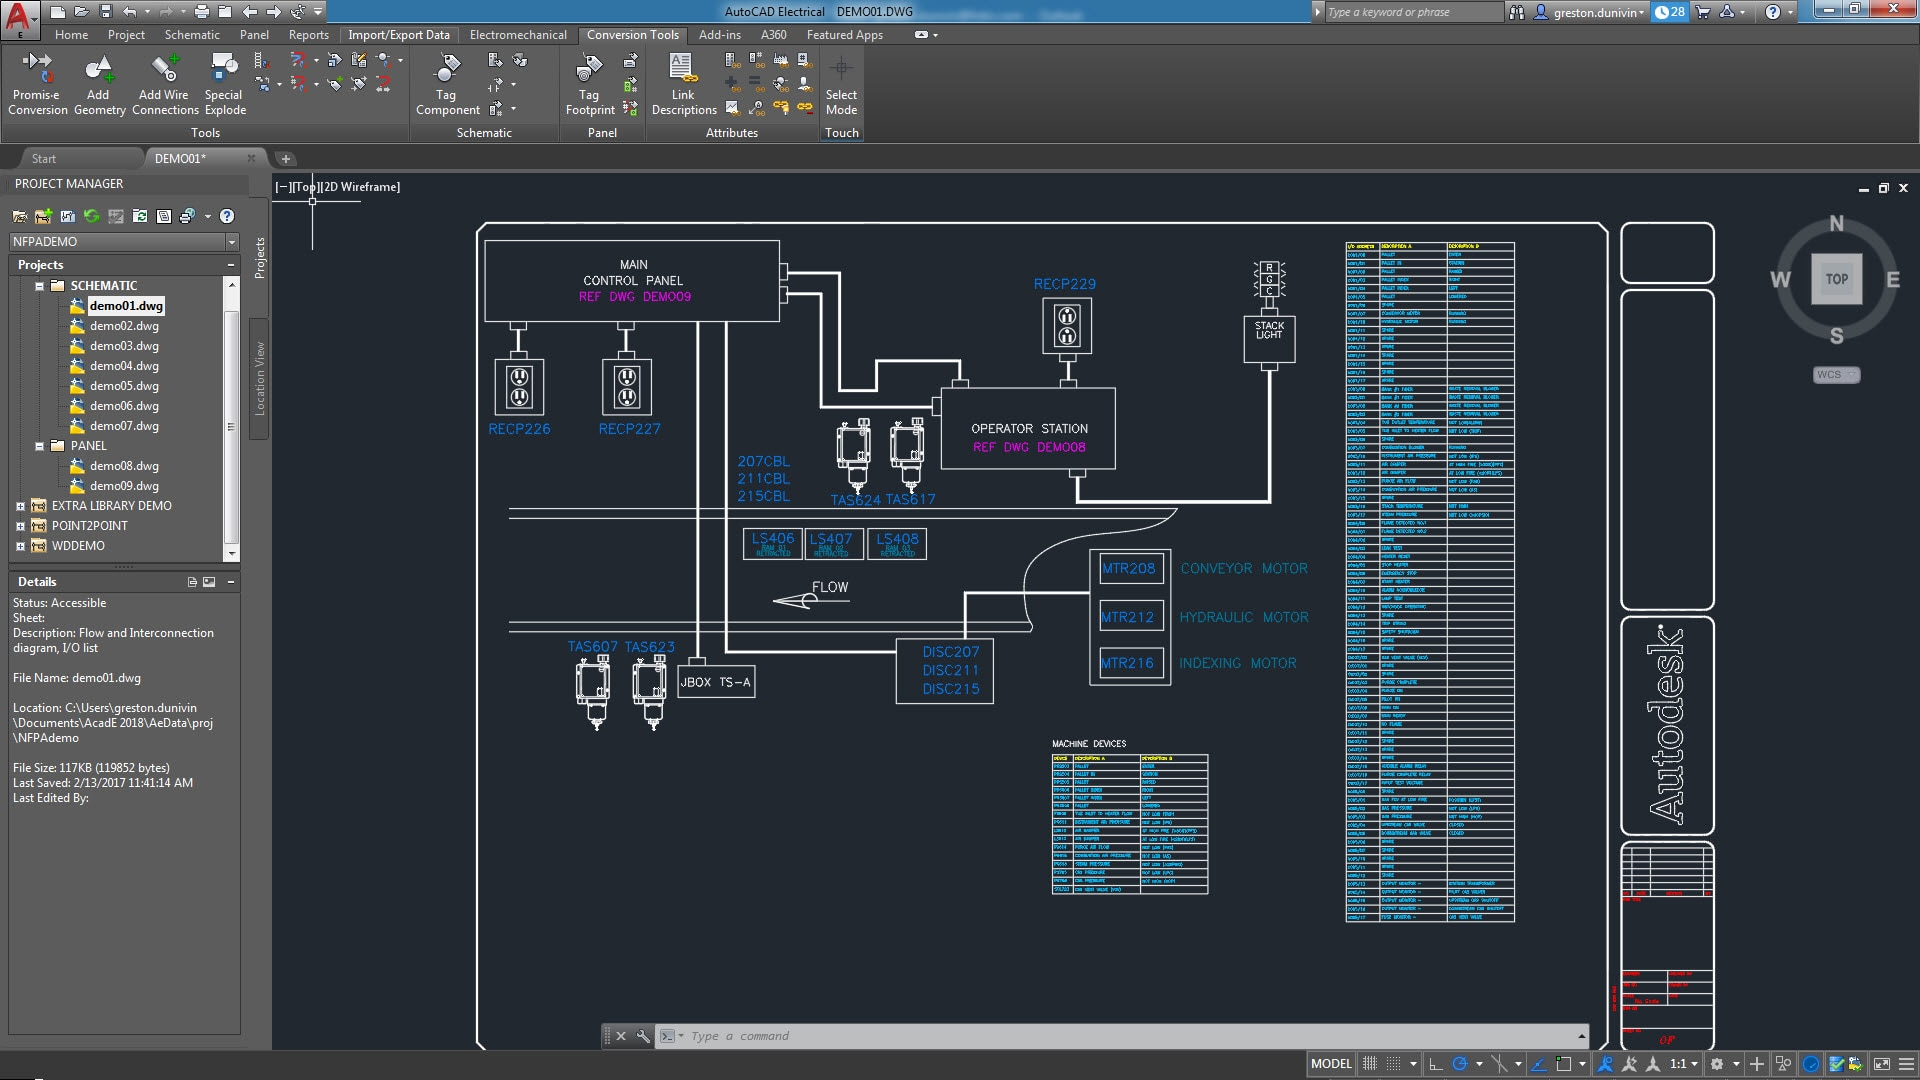 Autocad Electrical Toolset Design Software Wire Schematics For Dummies The Enables Customer And Supplier Collaboration